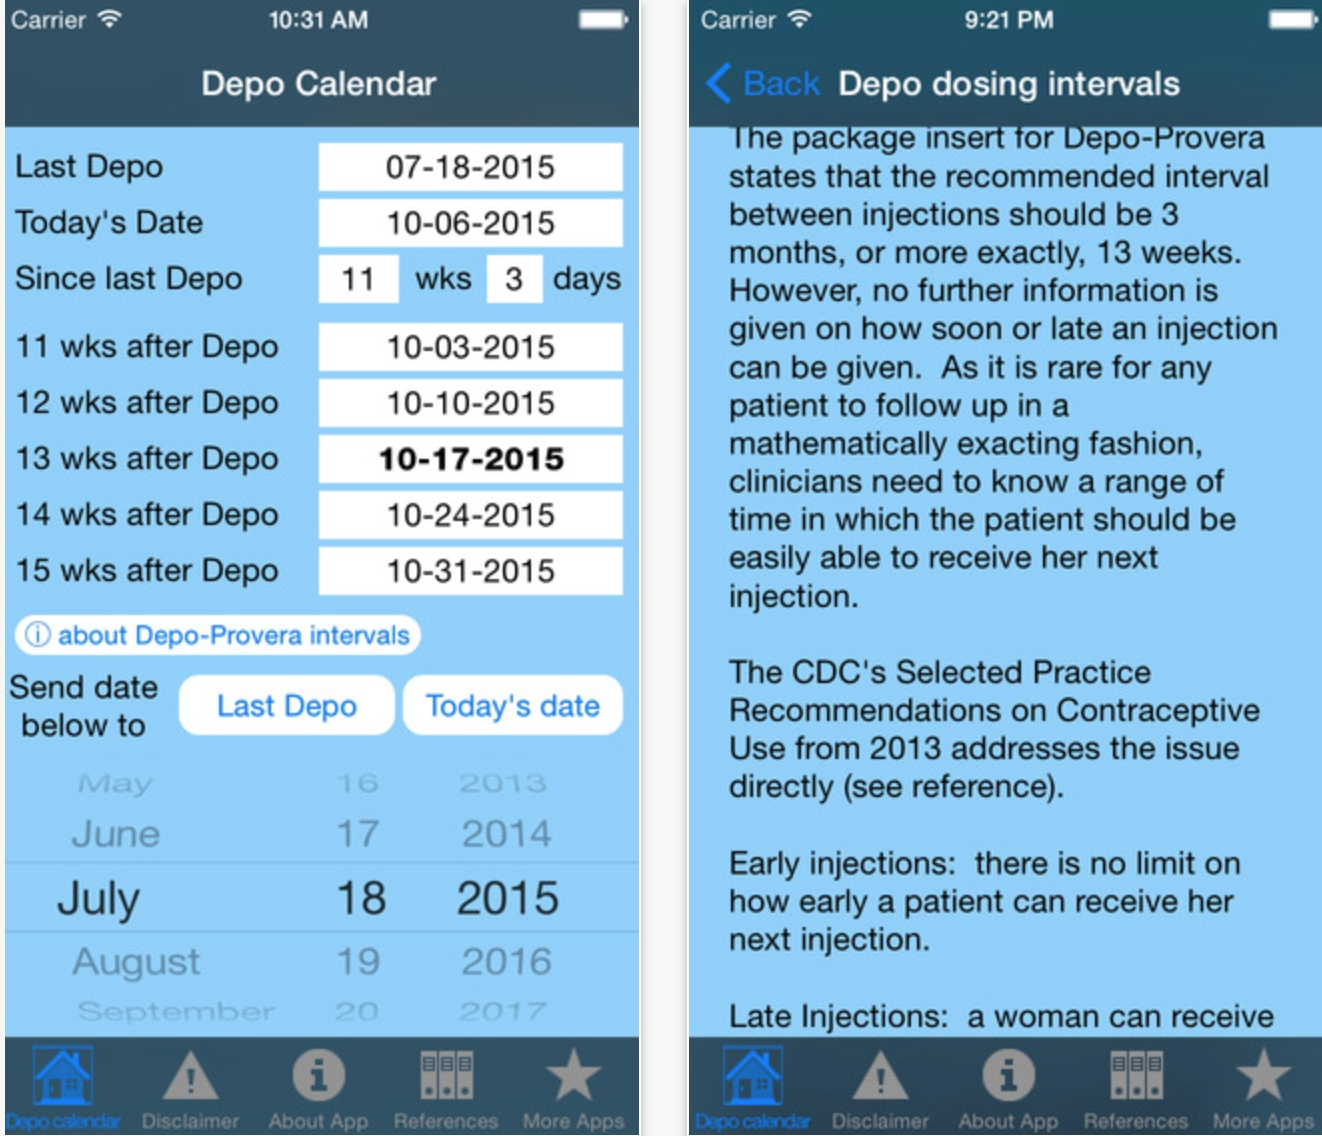 Depo Calendar App Could Significantly Improve Contraception  Depo Chart